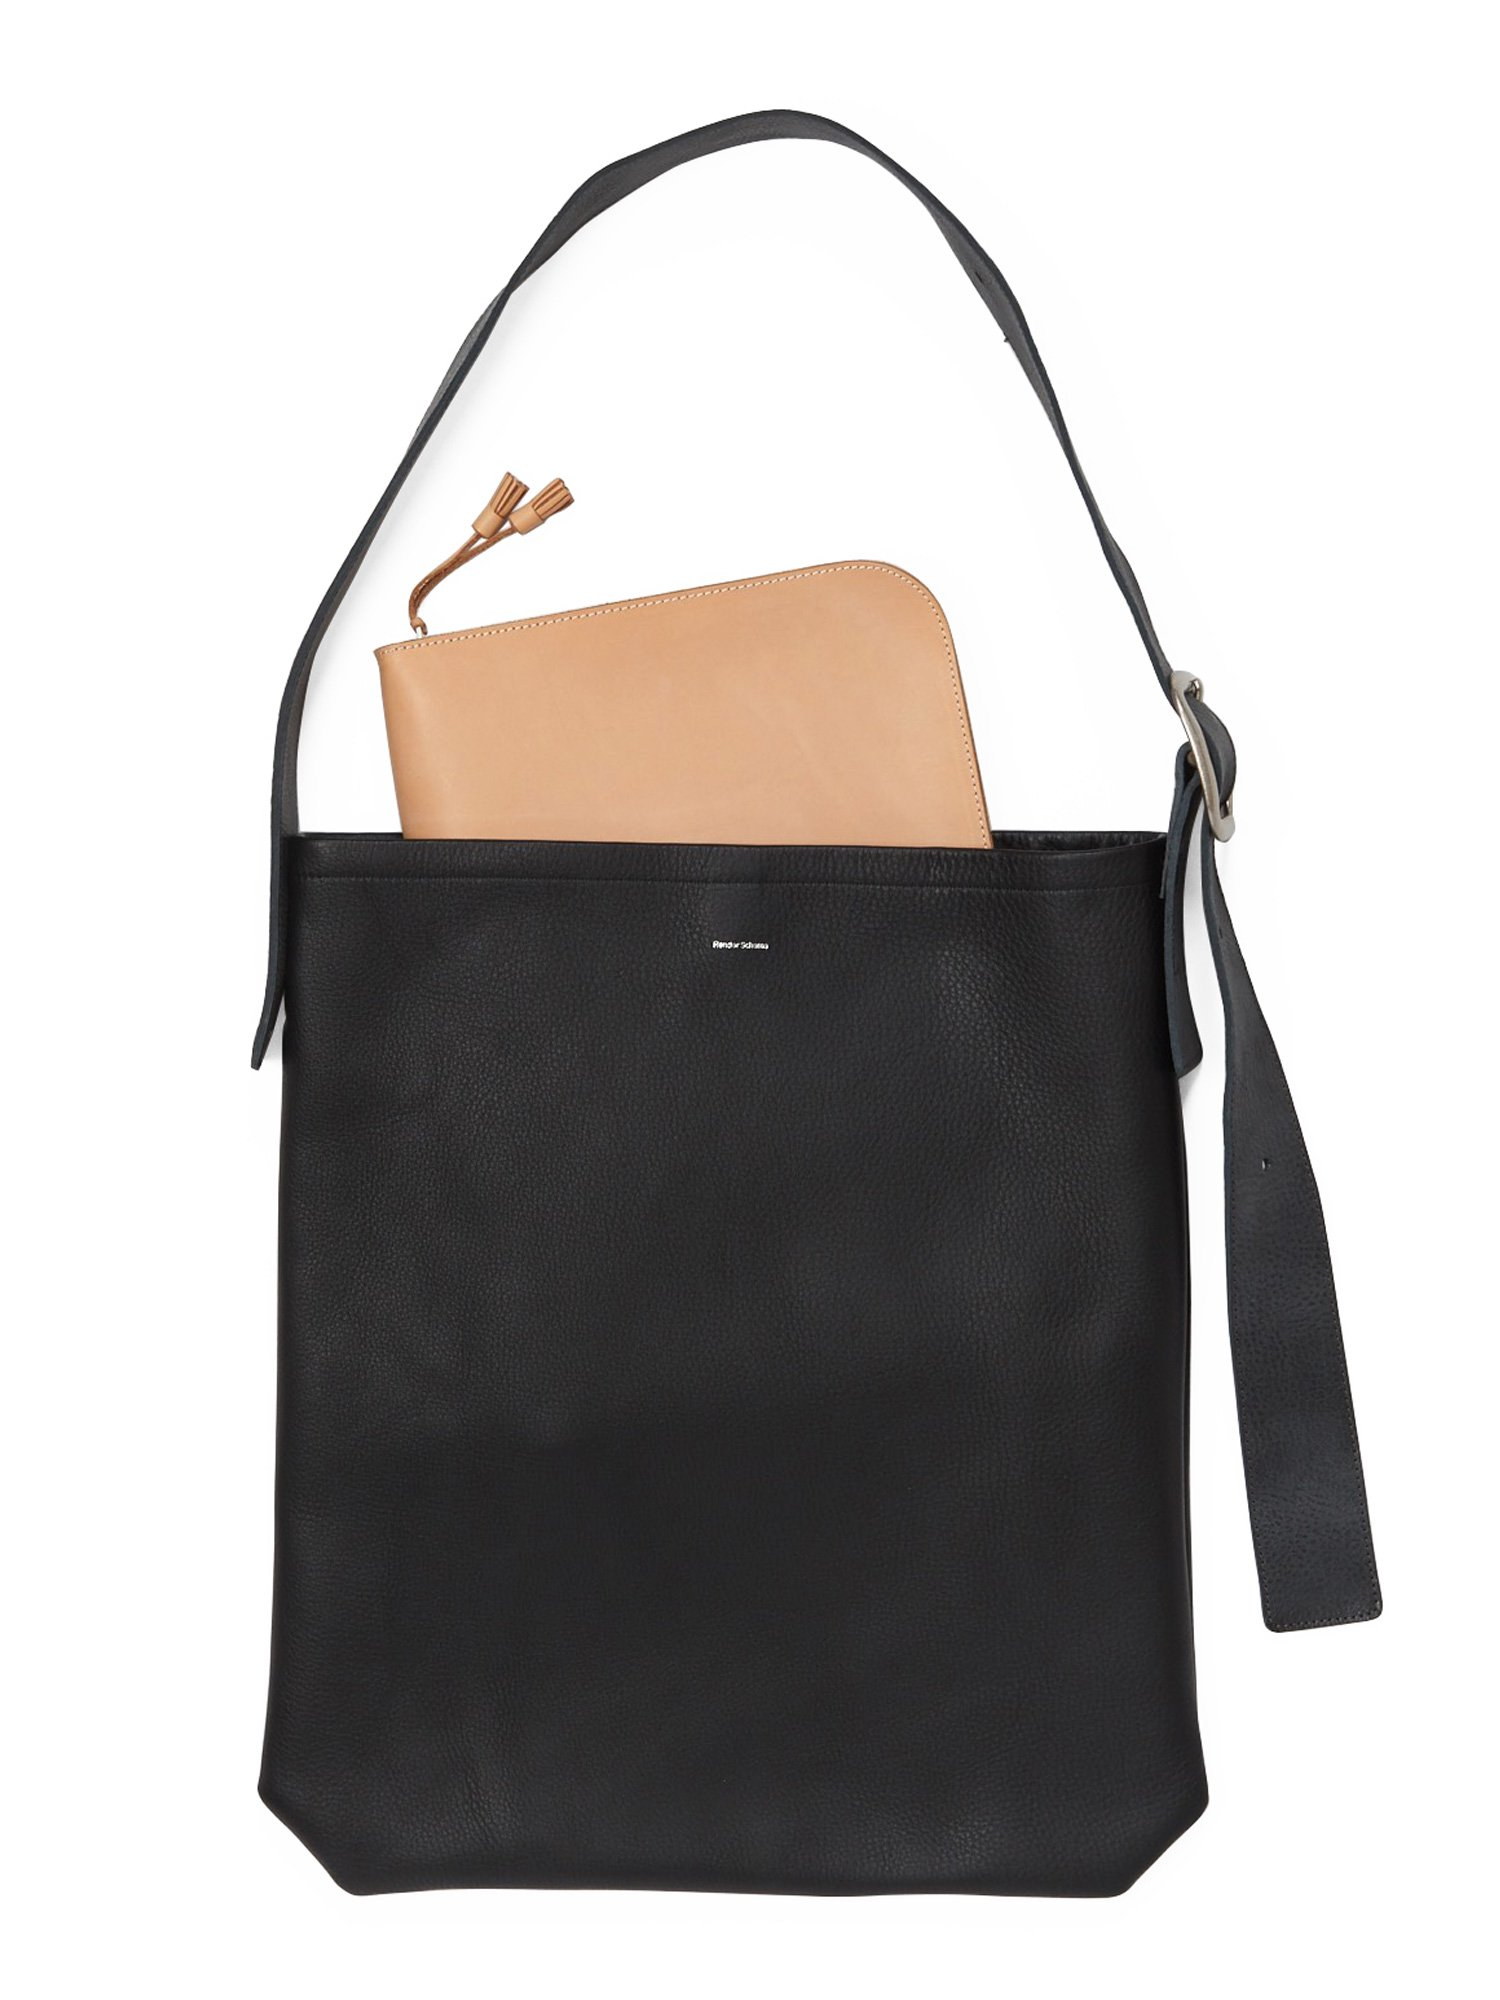 【Hender Scheme】ONE SIDE BELT BAG (BLACK)_2